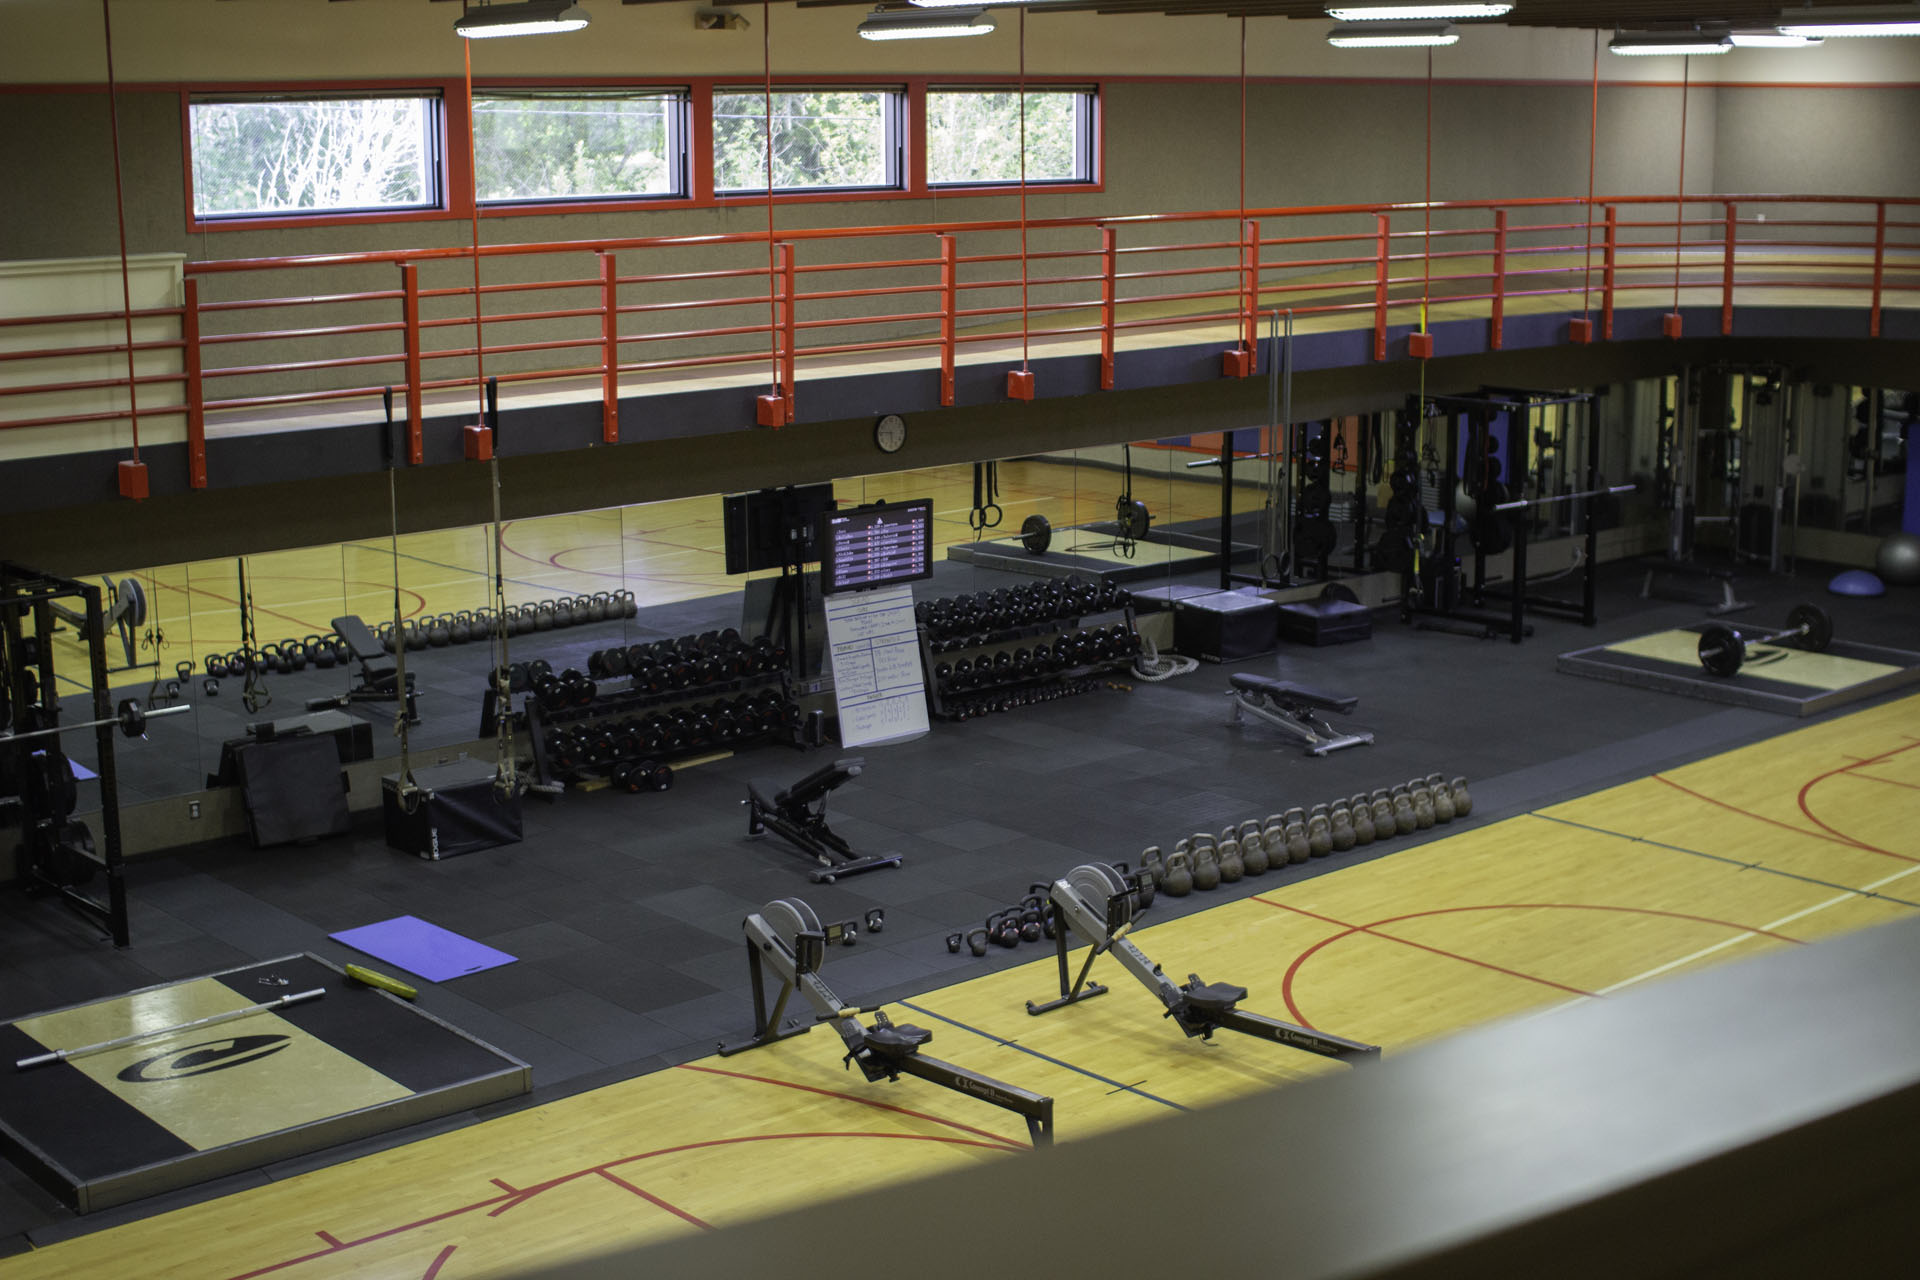 South River Road – Courthouse Club Fitness